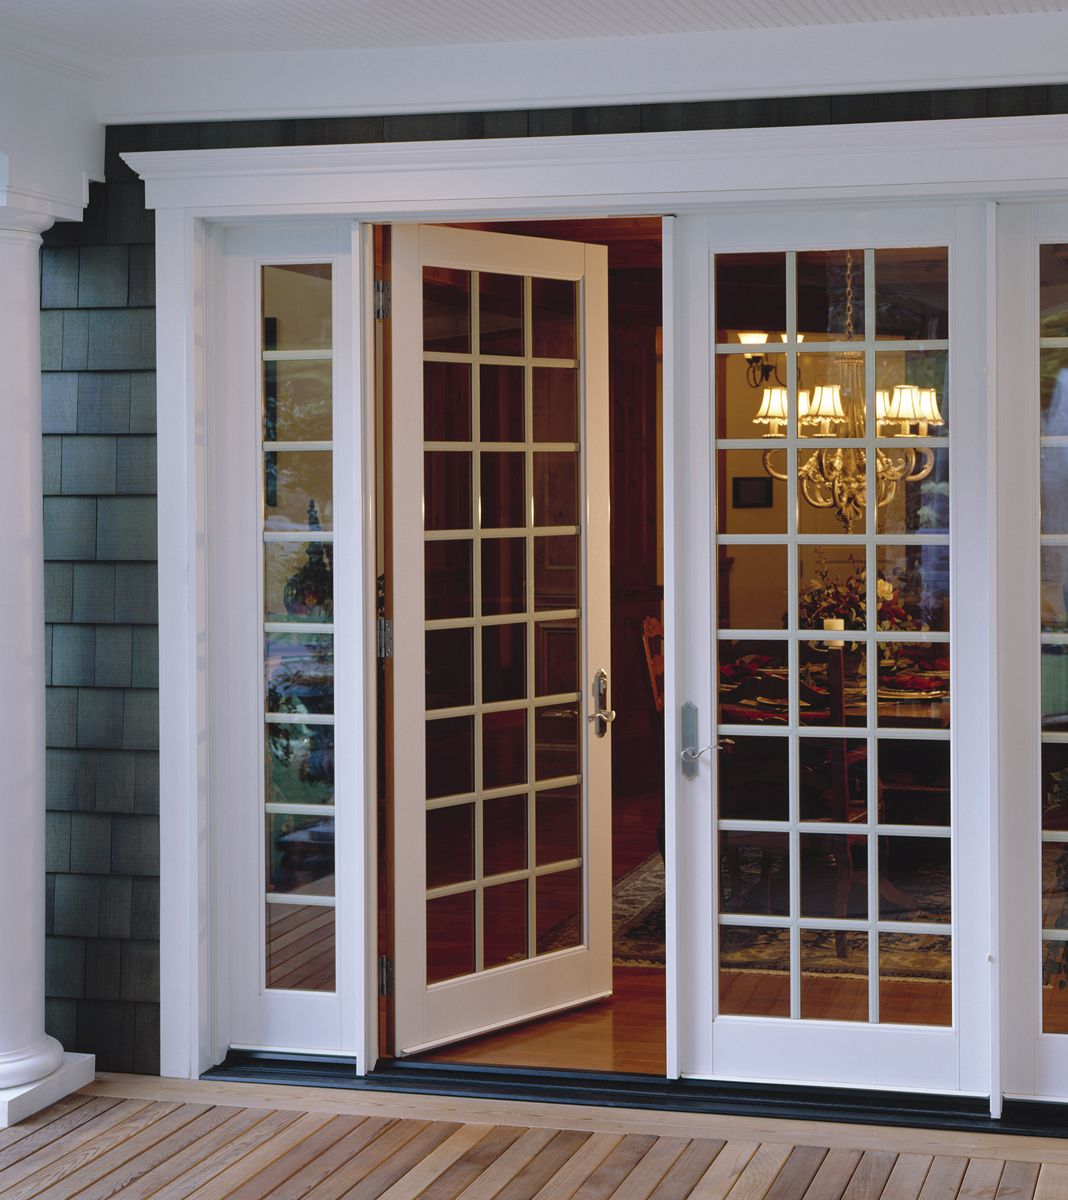 17 Best images about To Adore French Doors on Pinterest | Ultra series,  Windows and doors and Tuscany